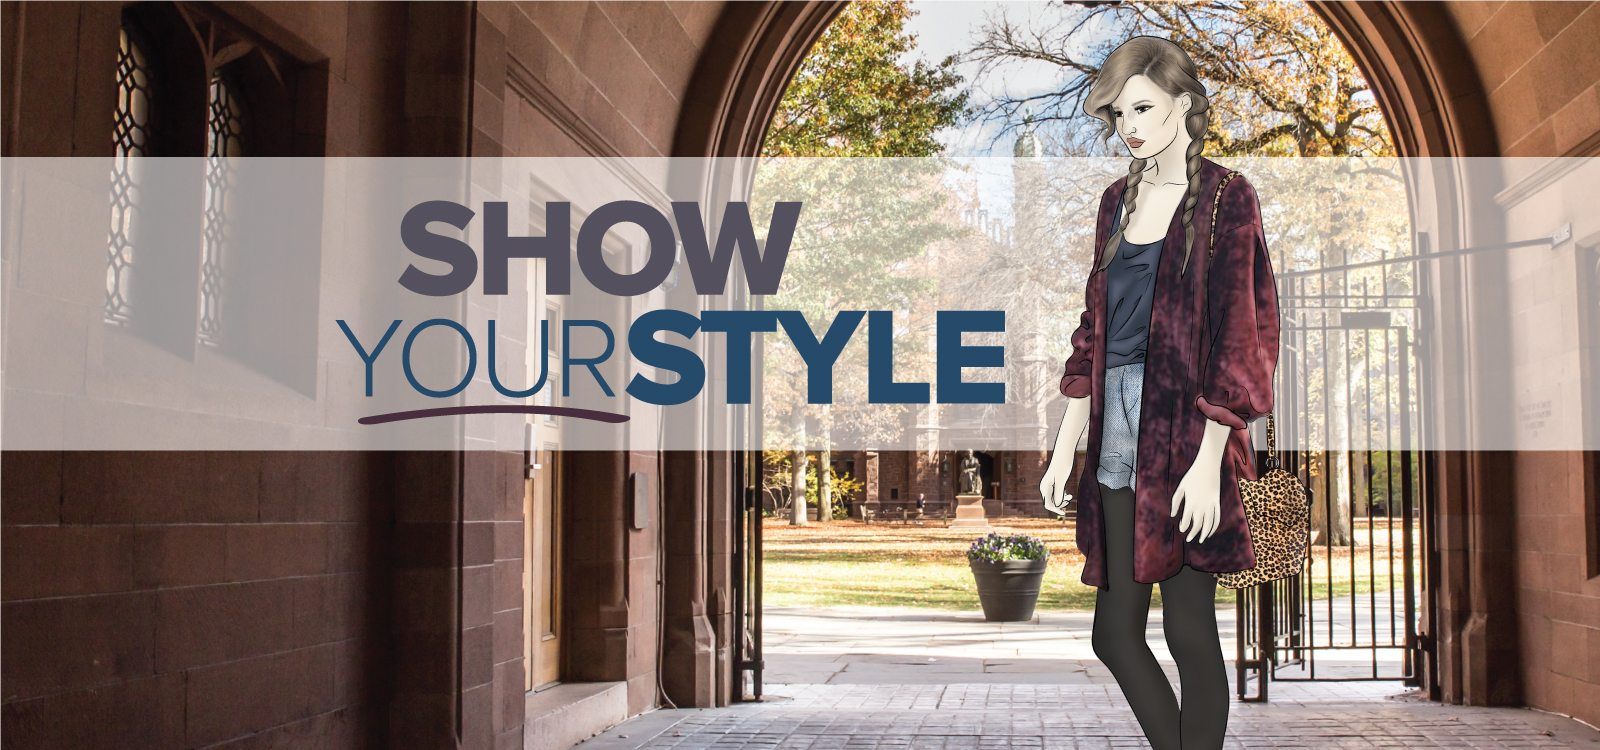 Fall_ShowYourStyle_1600x750_Campus_0616